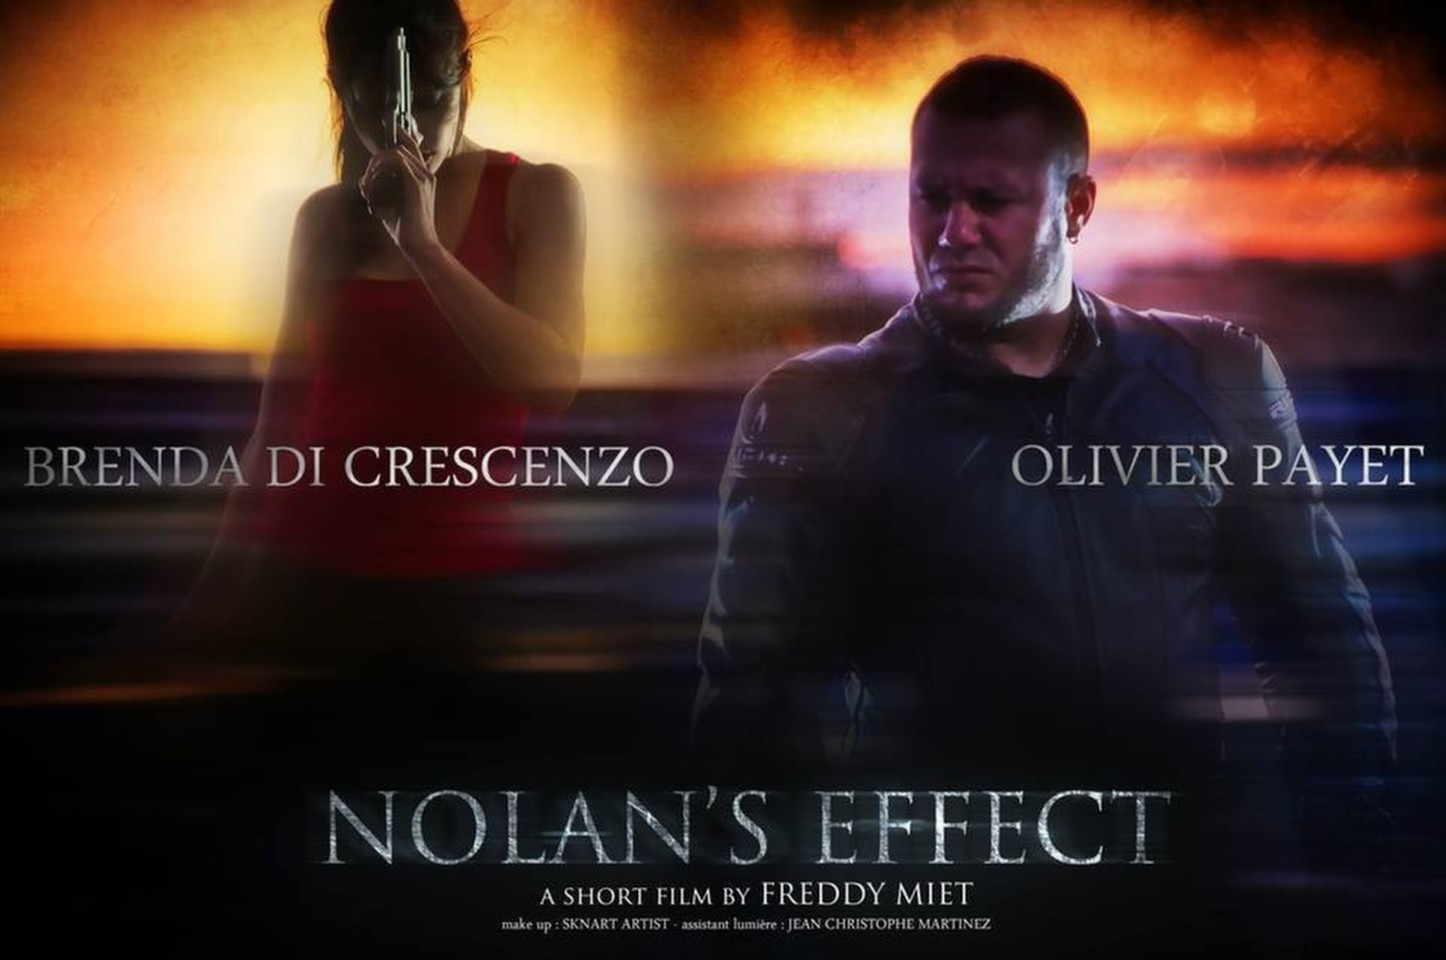 NOLAN'S EFFECT (short movie)